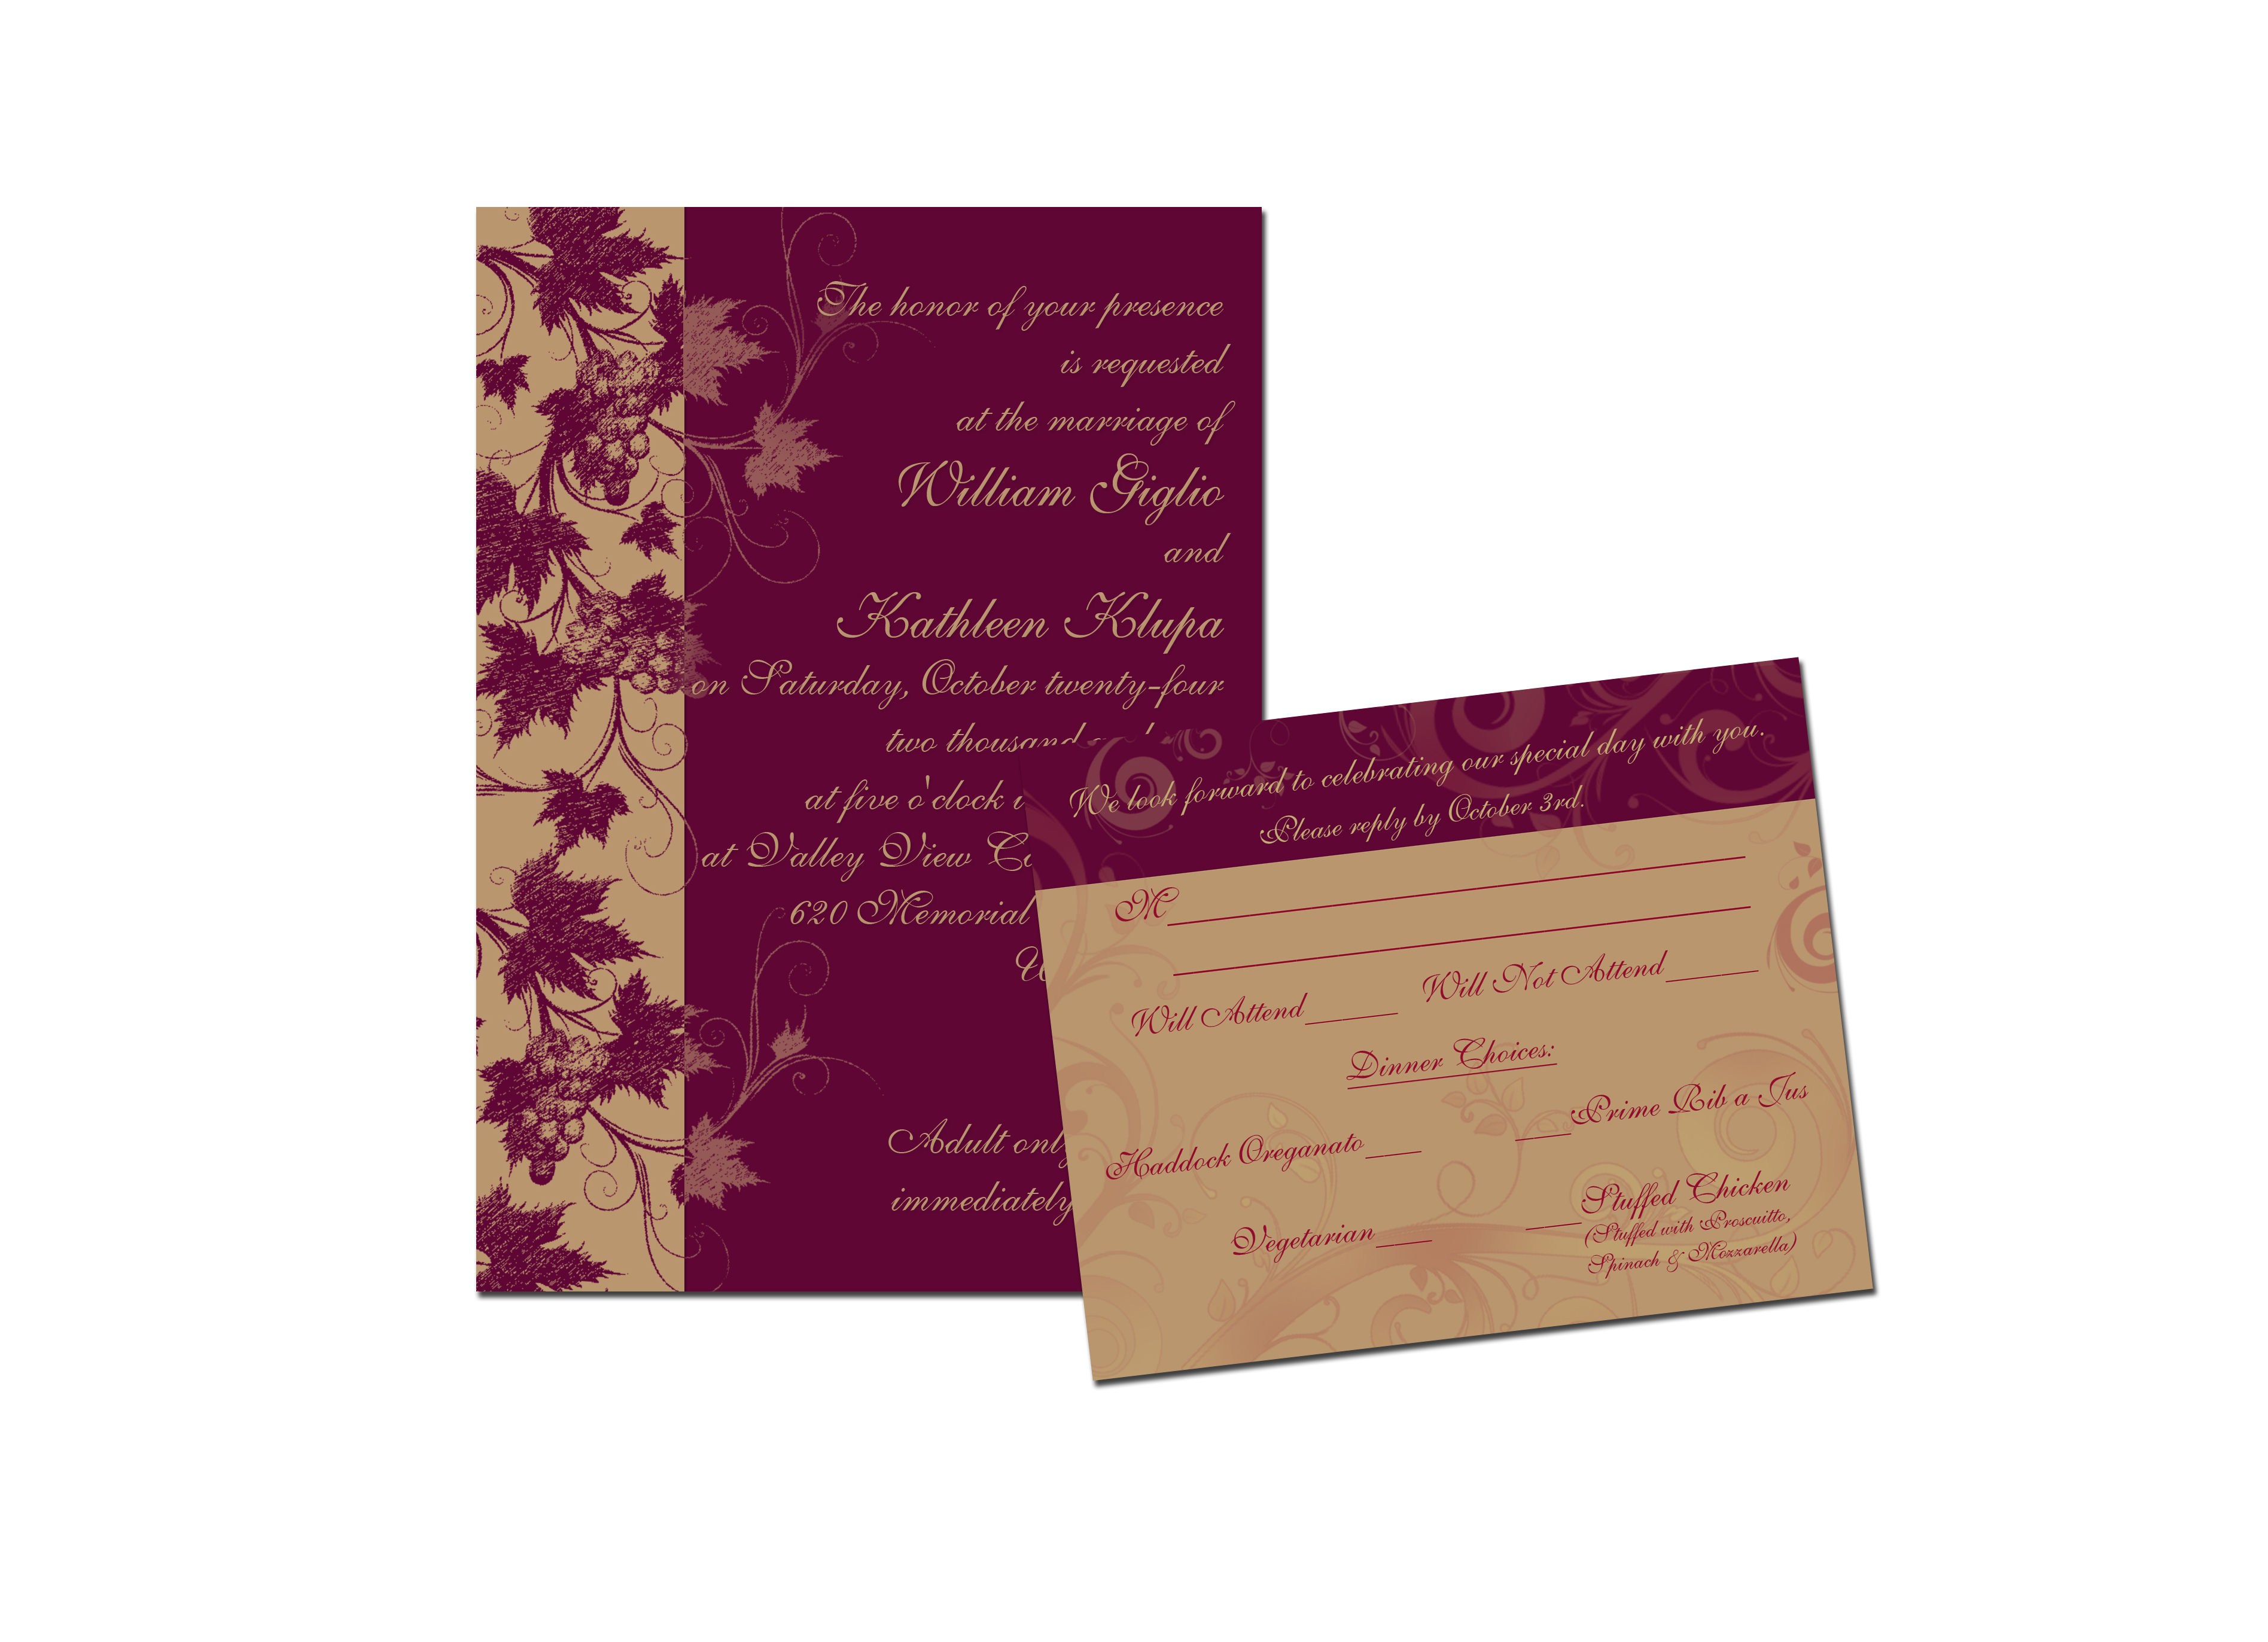 Stationery, invitation, Invitations, Wedding, Custom, Theme, Desimone designs